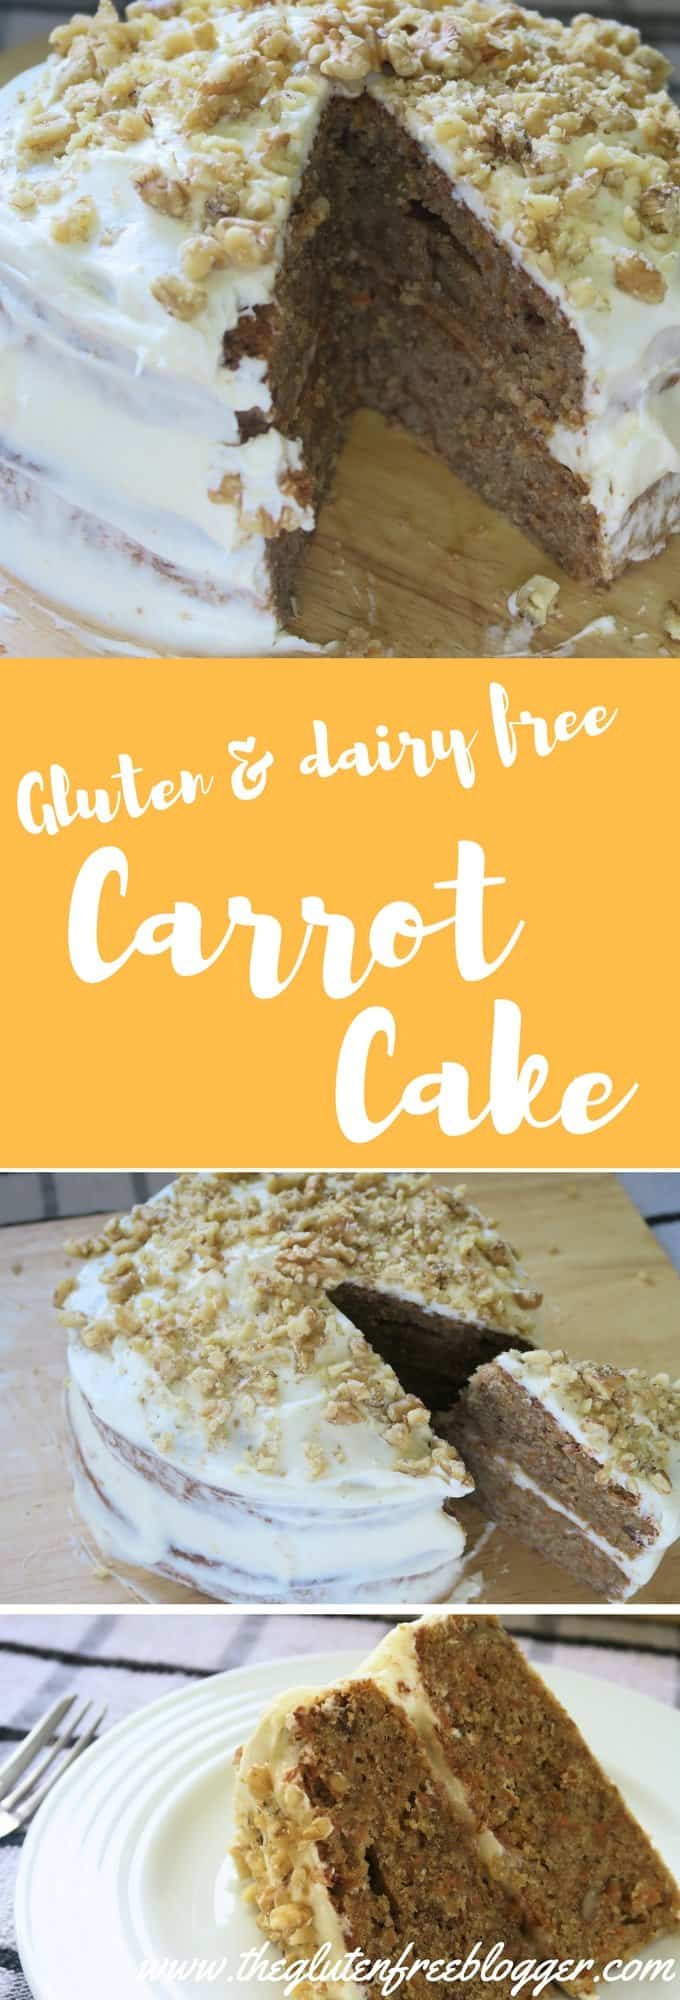 Gluten free carrot cake recipe with dairy free cream cheese frosting